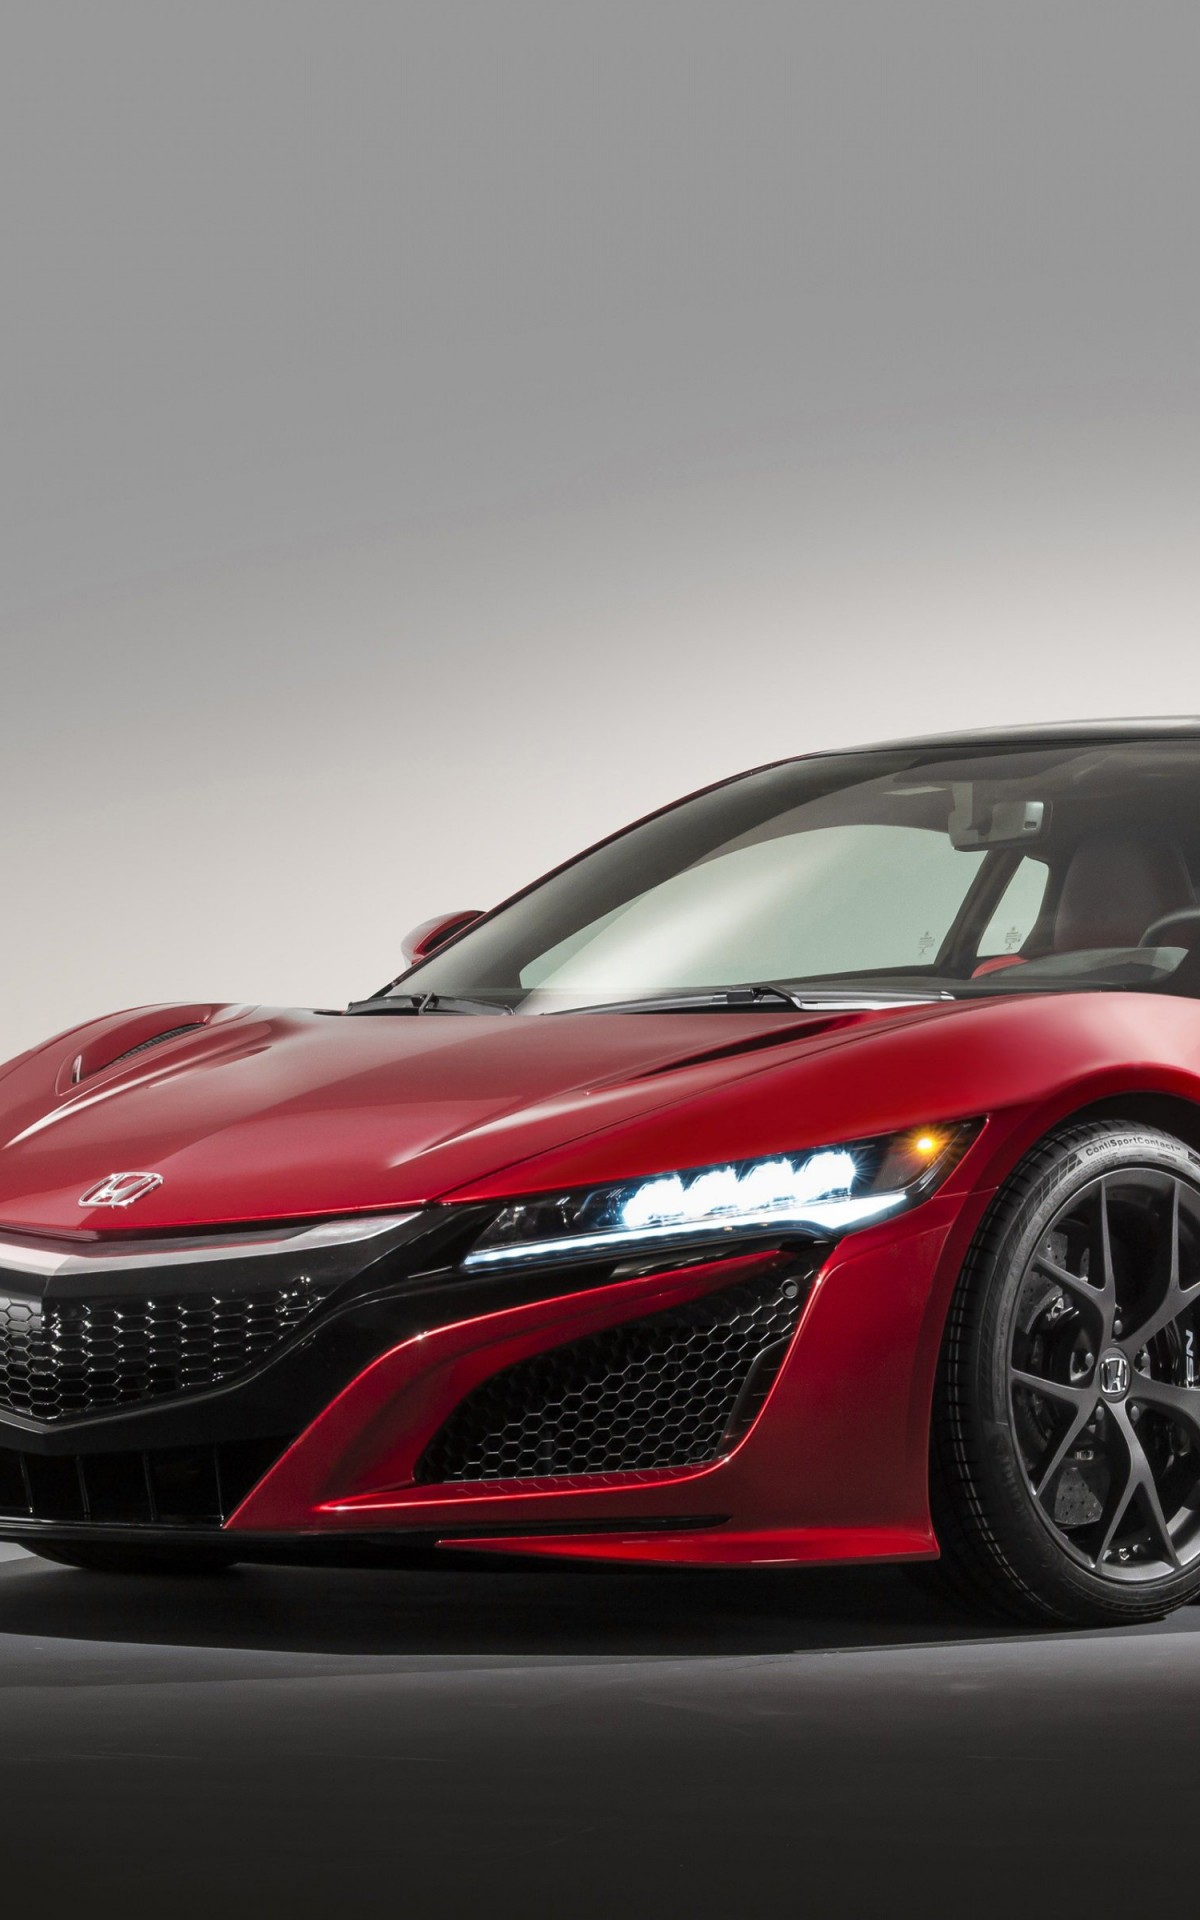 Honda NSX 2015 Wallpaper for Amazon Kindle Fire HDX